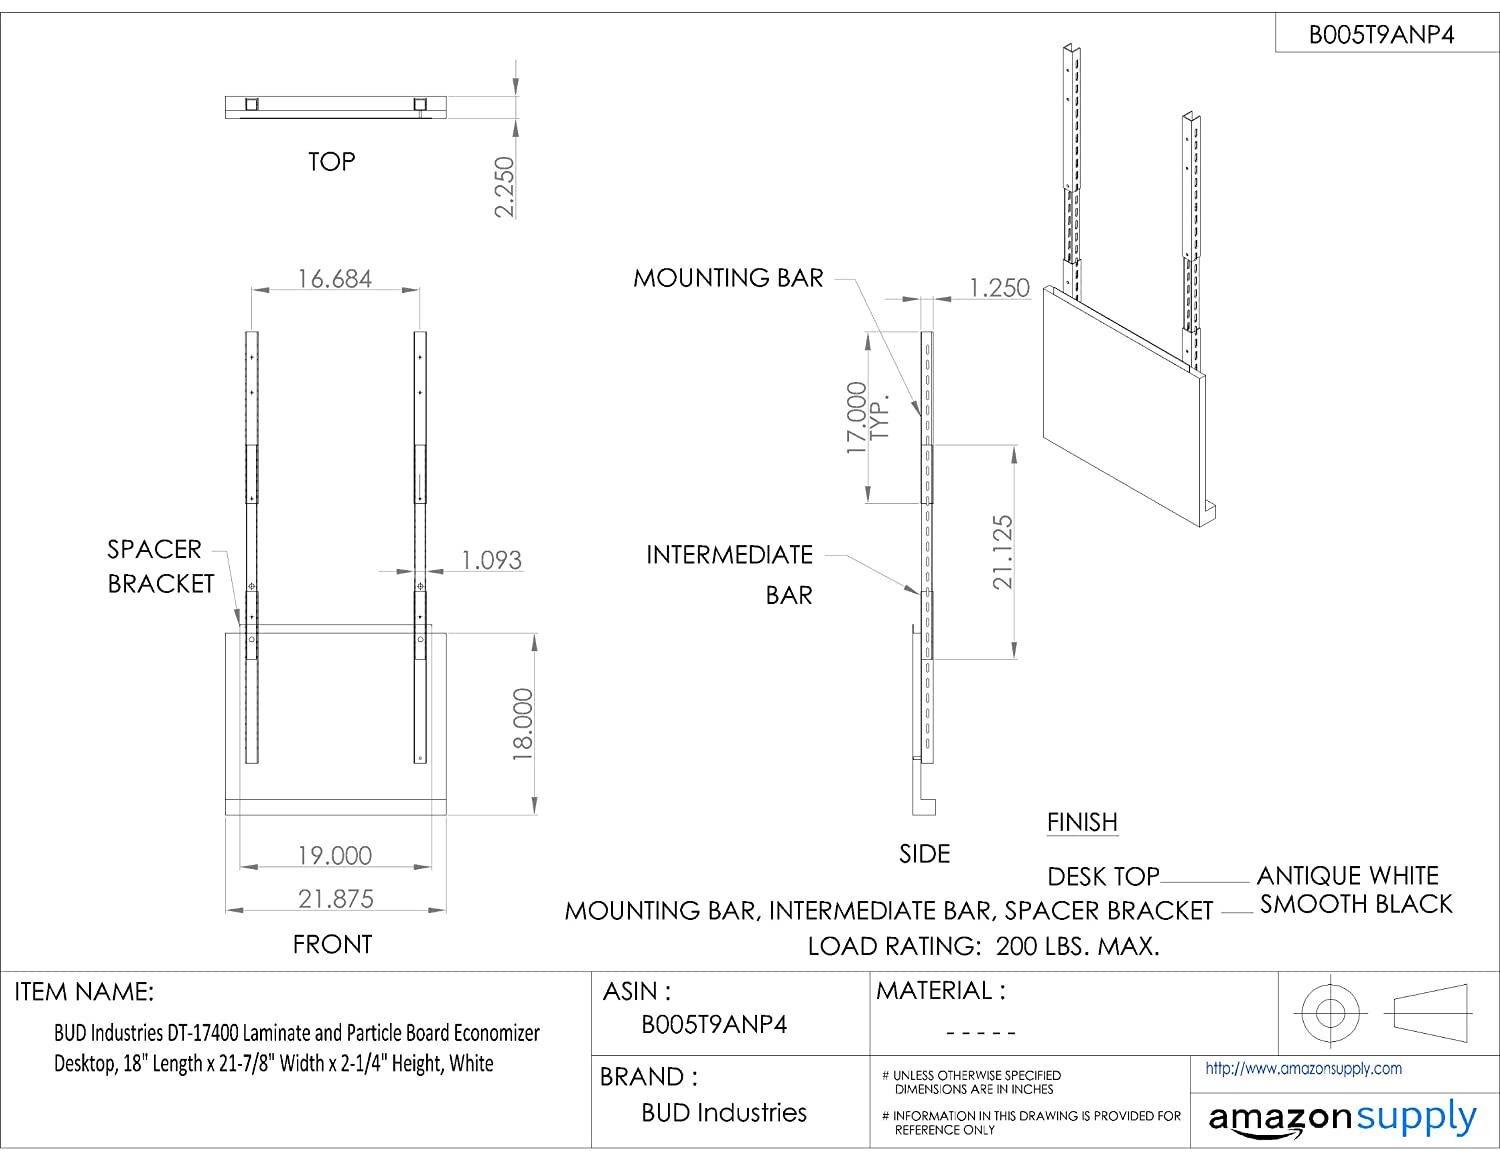 Bud Industries Dt 17400 Laminate And Particle Board Economizer Wiring Diagram Desktop 18 Length X 21 7 8 Width 2 1 4 Height White Electrical Boxes